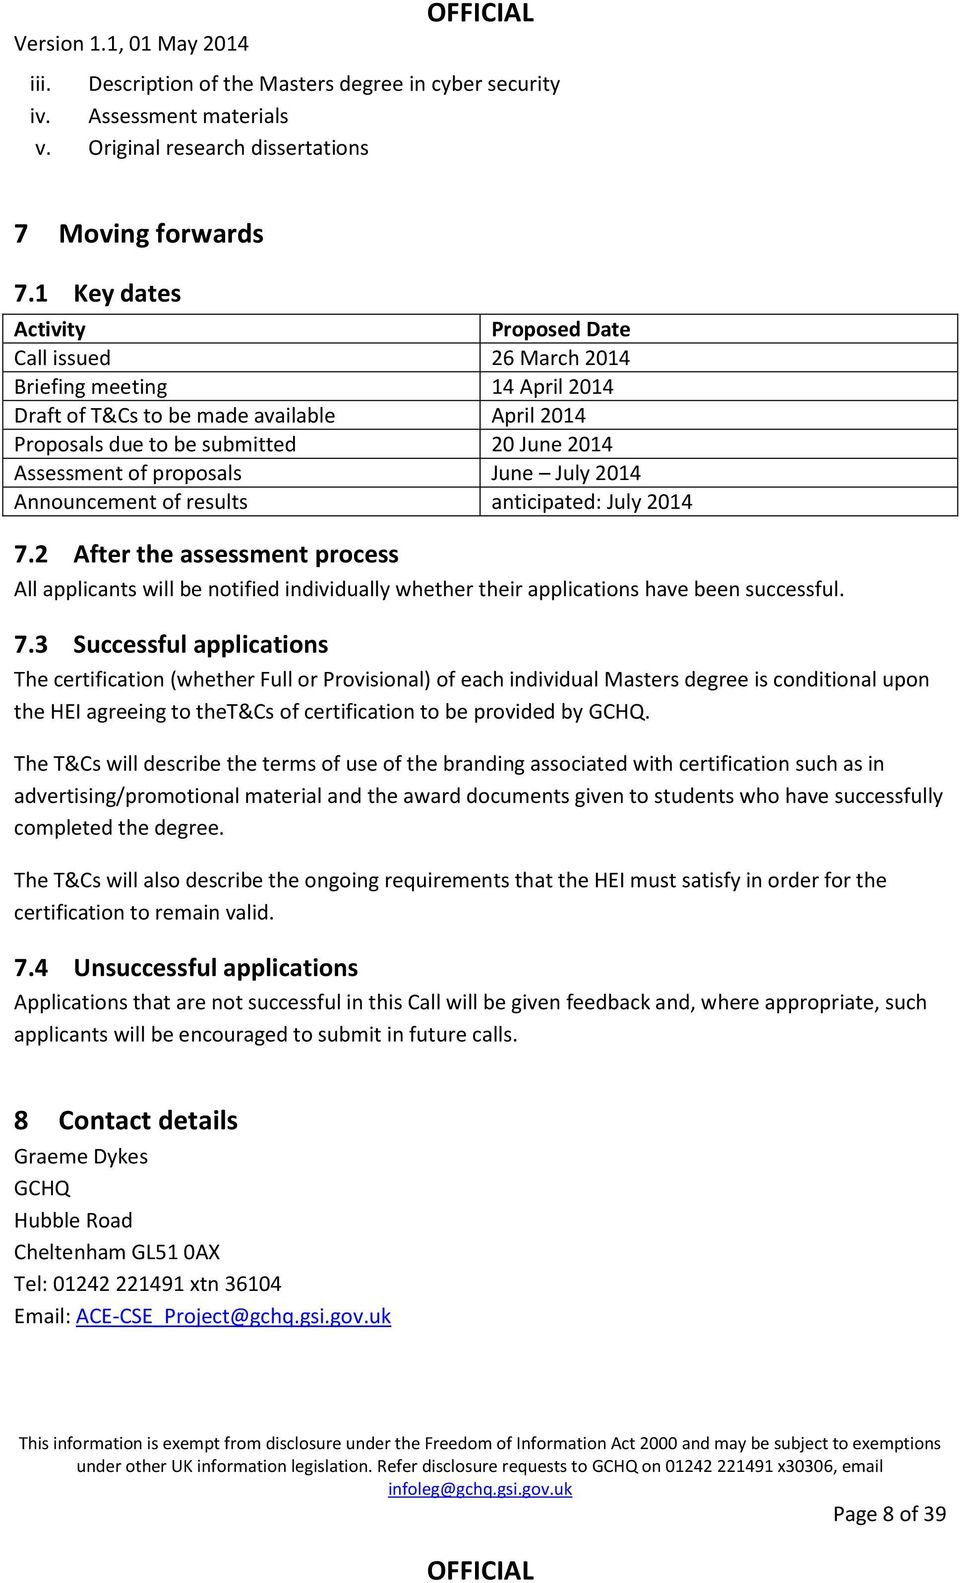 proposals June July 2014 Announcement of results anticipated: July 2014 7.2 After the assessment process All applicants will be notified individually whether their applications have been successful.